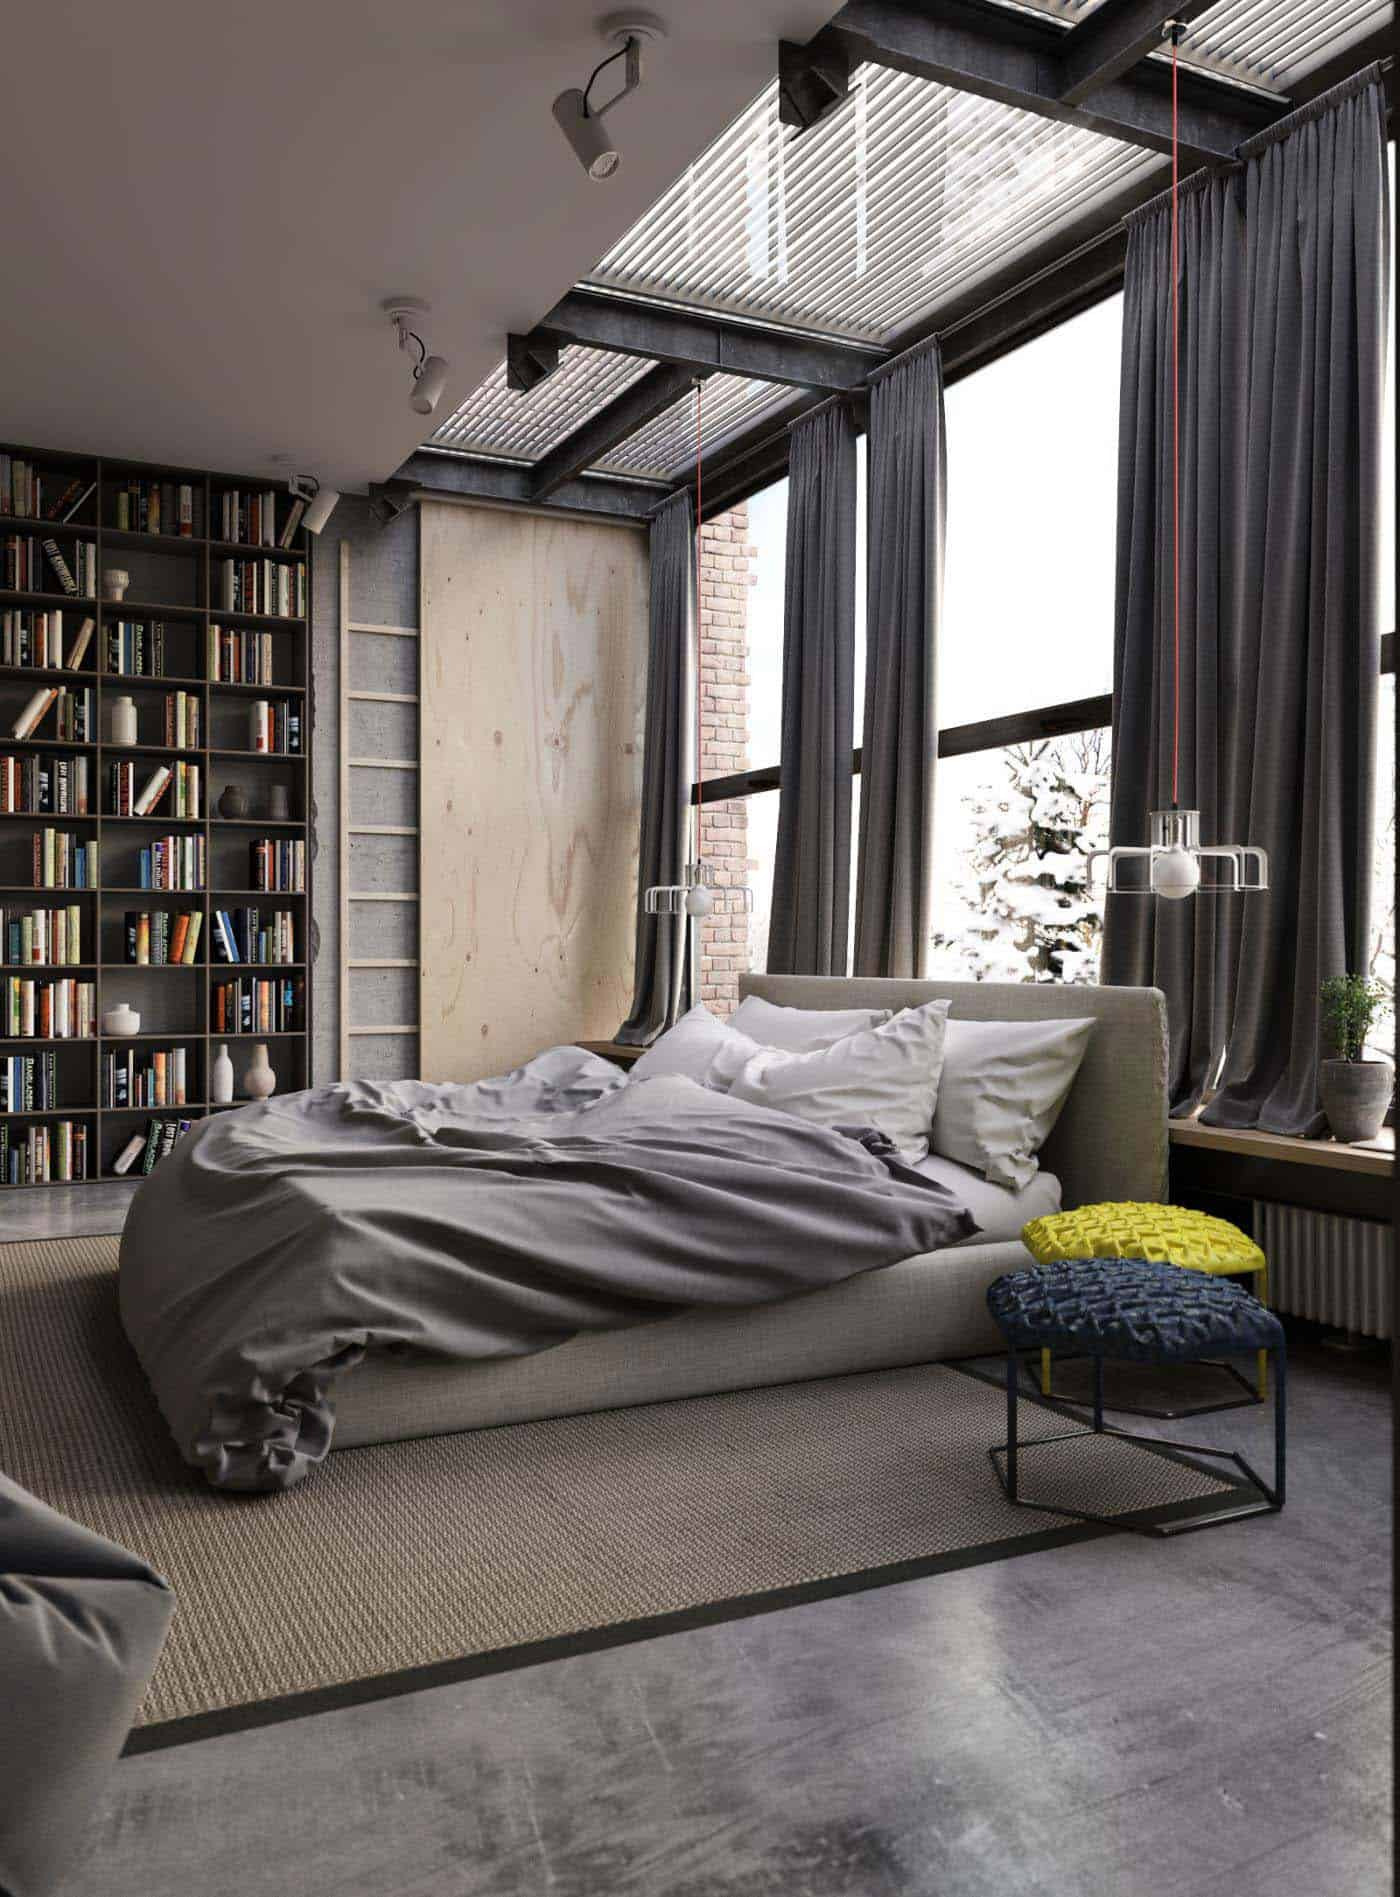 Industrial Style Bedroom Design Ideas 34 1 Kindesign